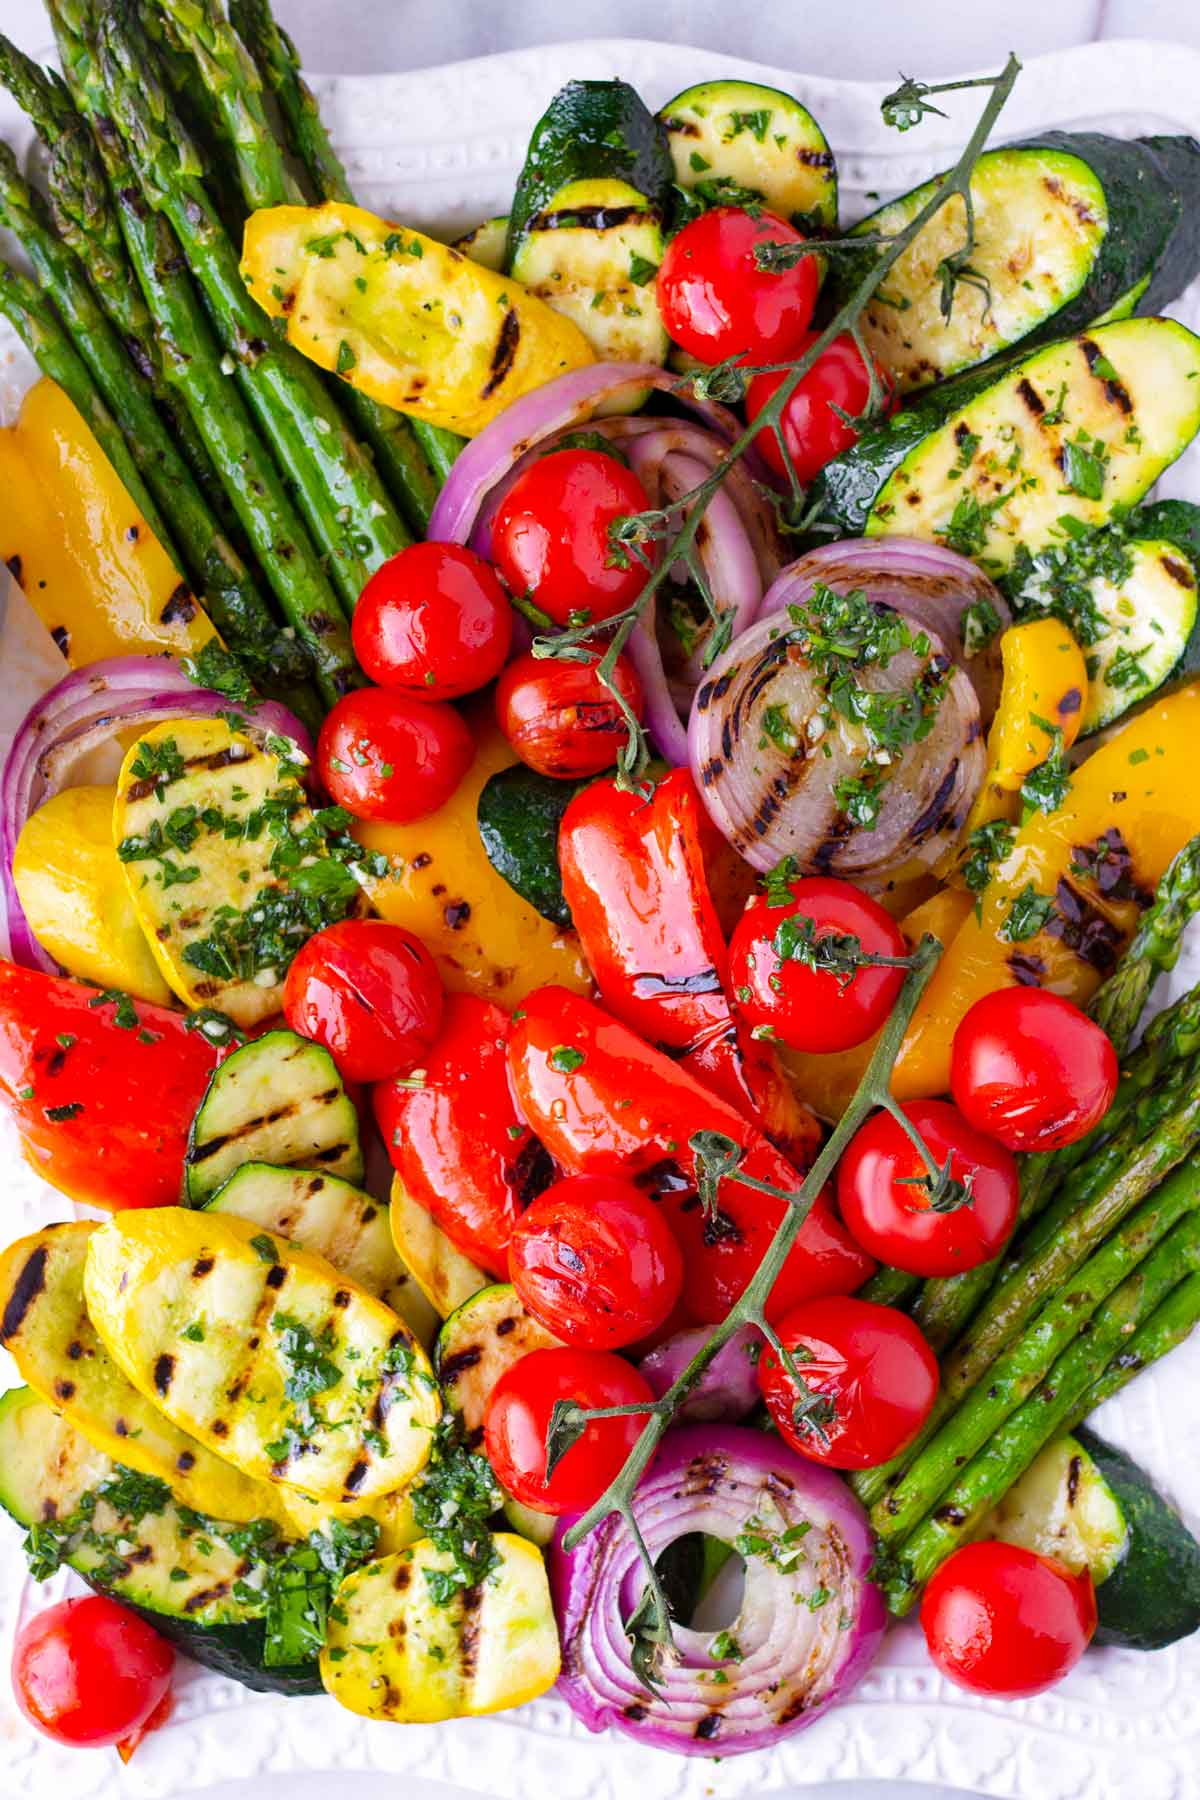 grilled zucchini, asparagus, tomatoes, onions, and peppers on a platter